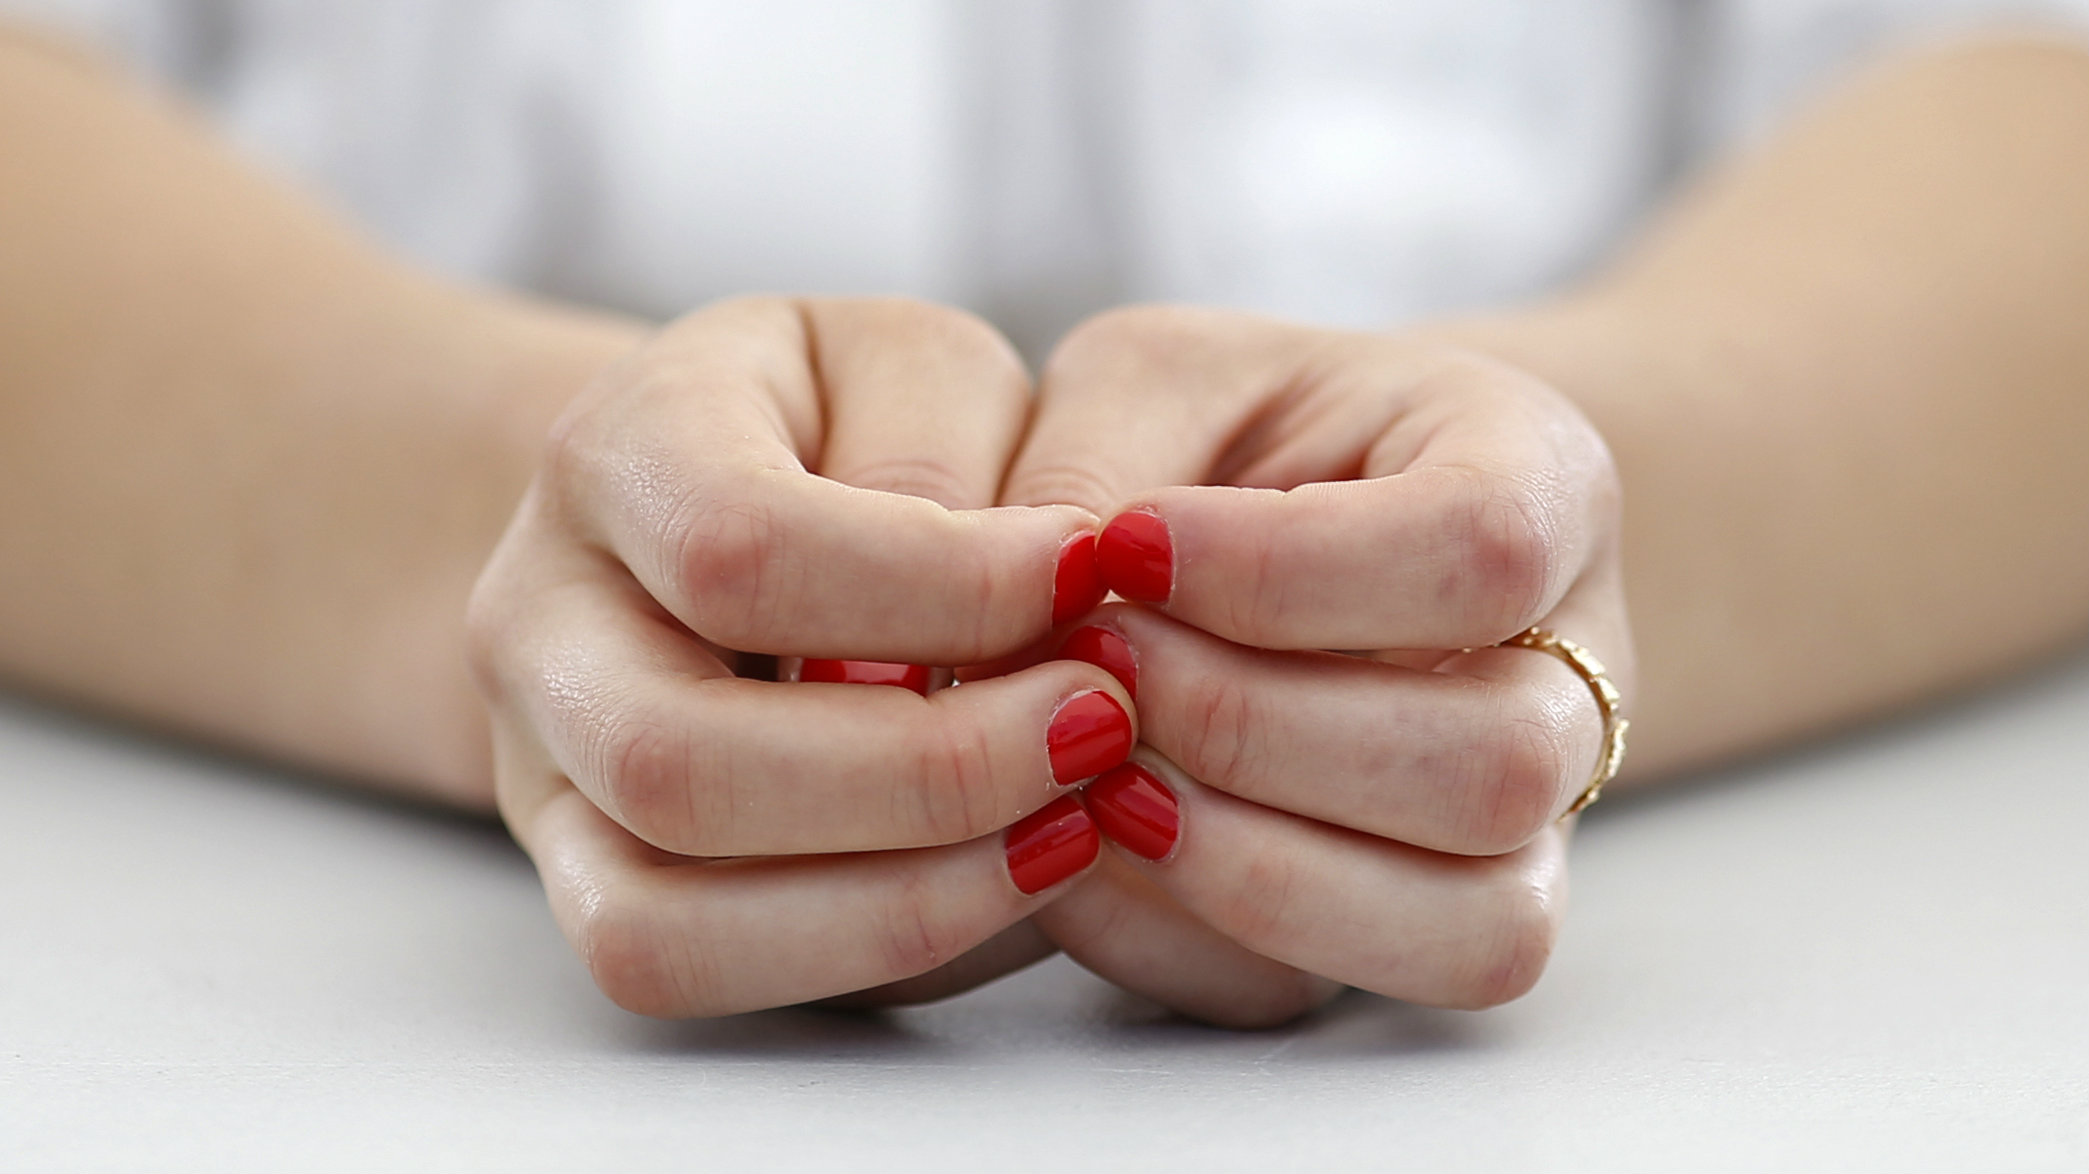 """Cast member Anais Demoustier, with red painted nails, poses during a photocall for the film """"Marguerite et Julien"""" in competition at the 68th Cannes Film Festival in Cannes, southern France, May 19, 2015. REUTERS/Benoit Tessier"""